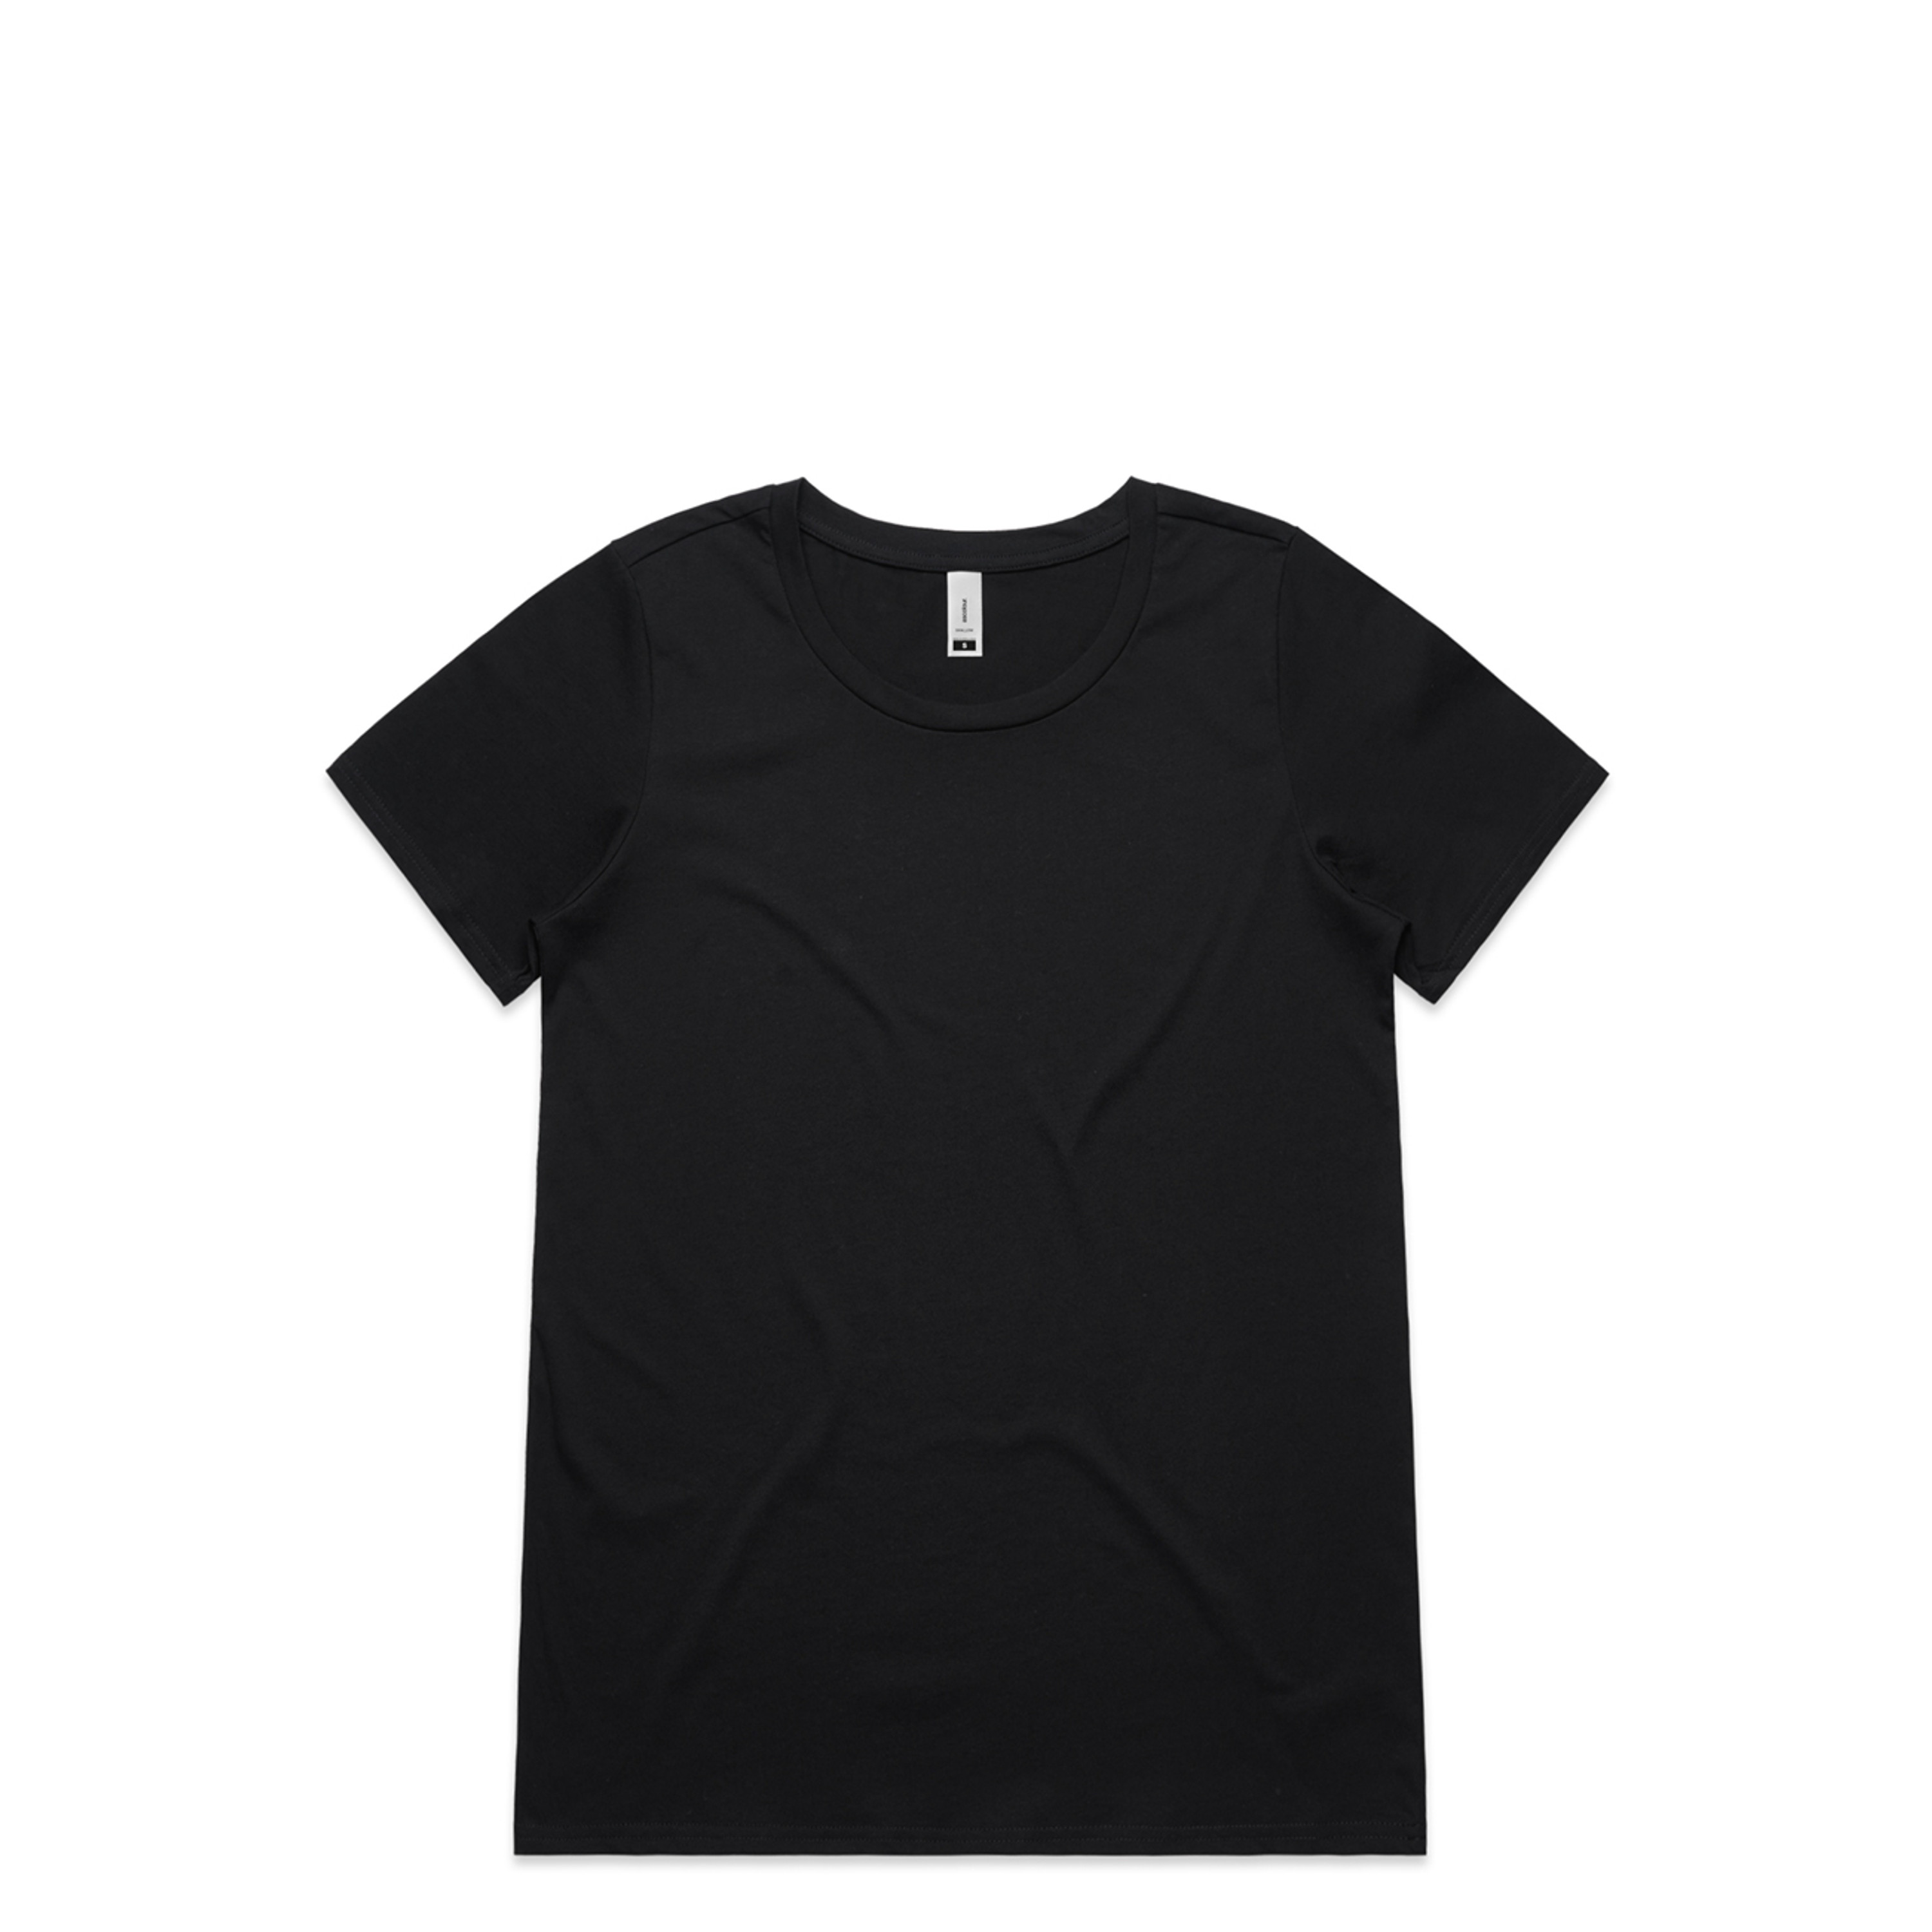 Wo's Shallow Scoop Tee - 4011